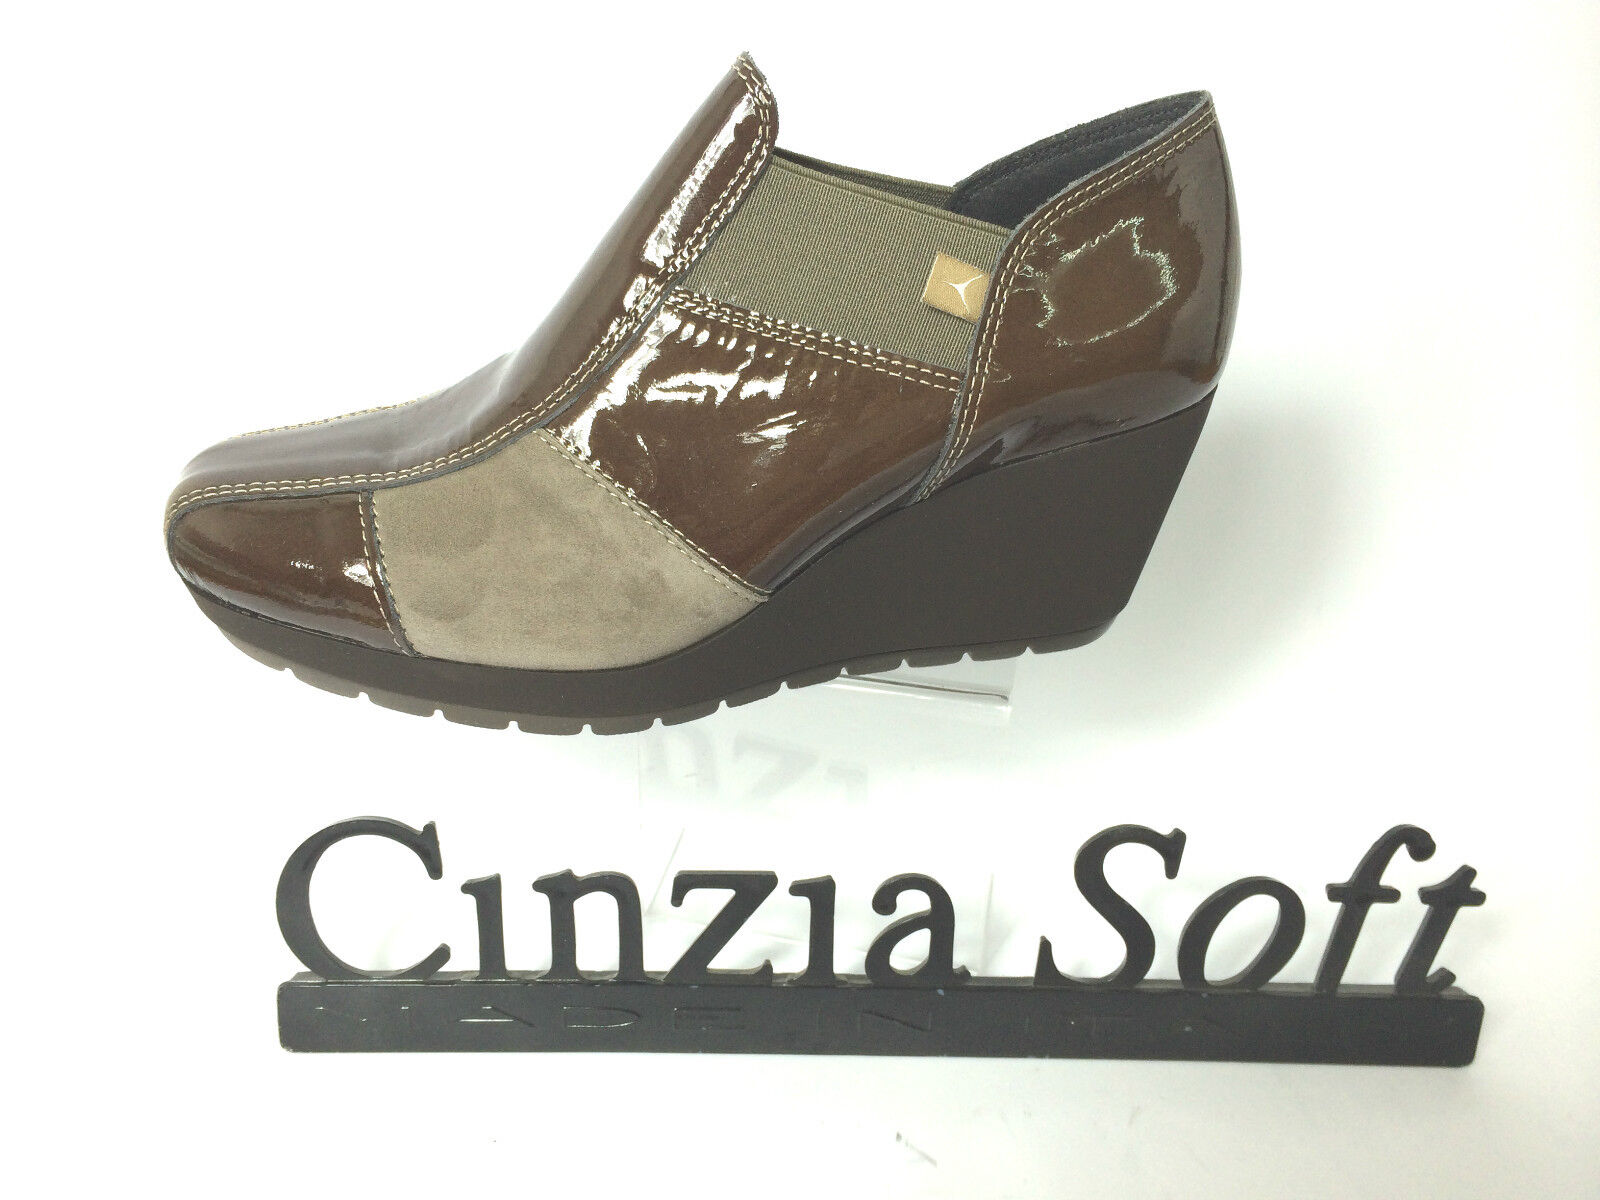 CINZIA SOFT SCARPA Damens STIVALETTO TAUPE ZEPPA H 6 CM MADE IN ITALY